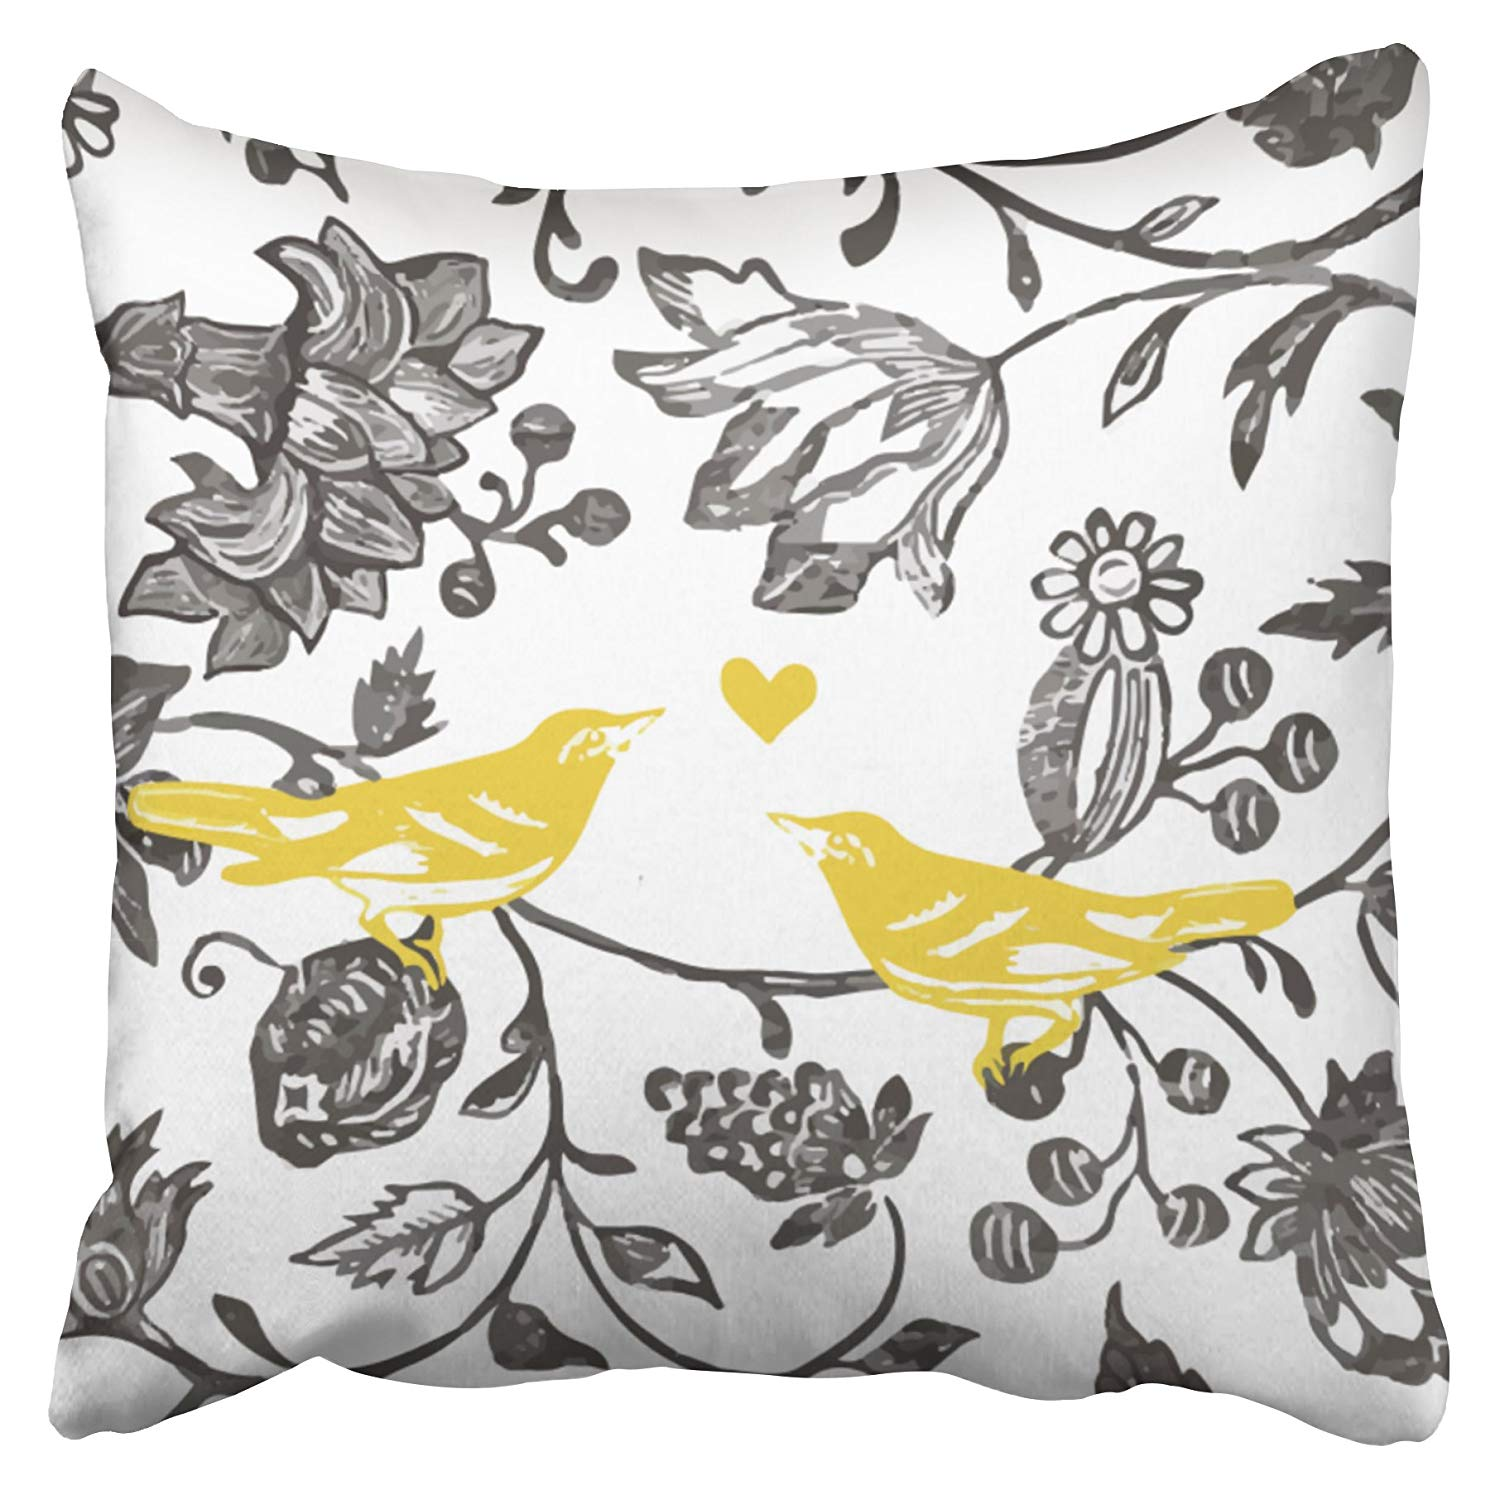 Artjia Trendy Yellow Gray And White Floral Bird Pattern Pillowcase Cushion Cover 18x18 Inch Walmart Com Walmart Com